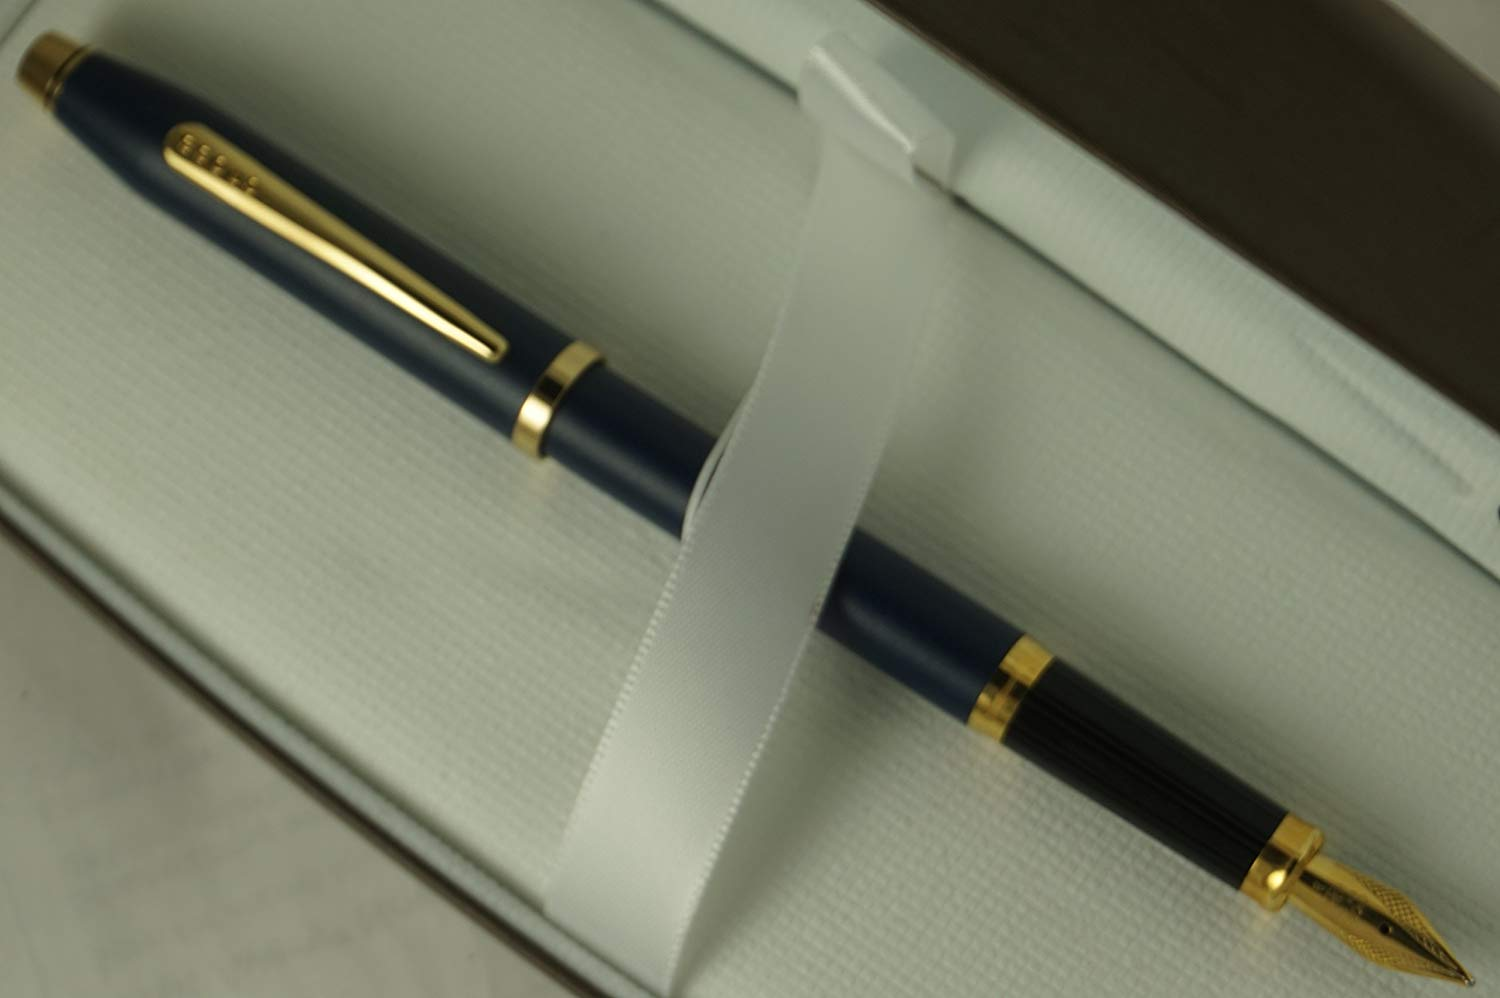 Cross Century II Limited Series, Satin Matte Blue Barrel with 23KT Gold Appointments, Solid and Stamped 18KT Gold XF NIB Fountain Pen in Pristine Cross Gift Box